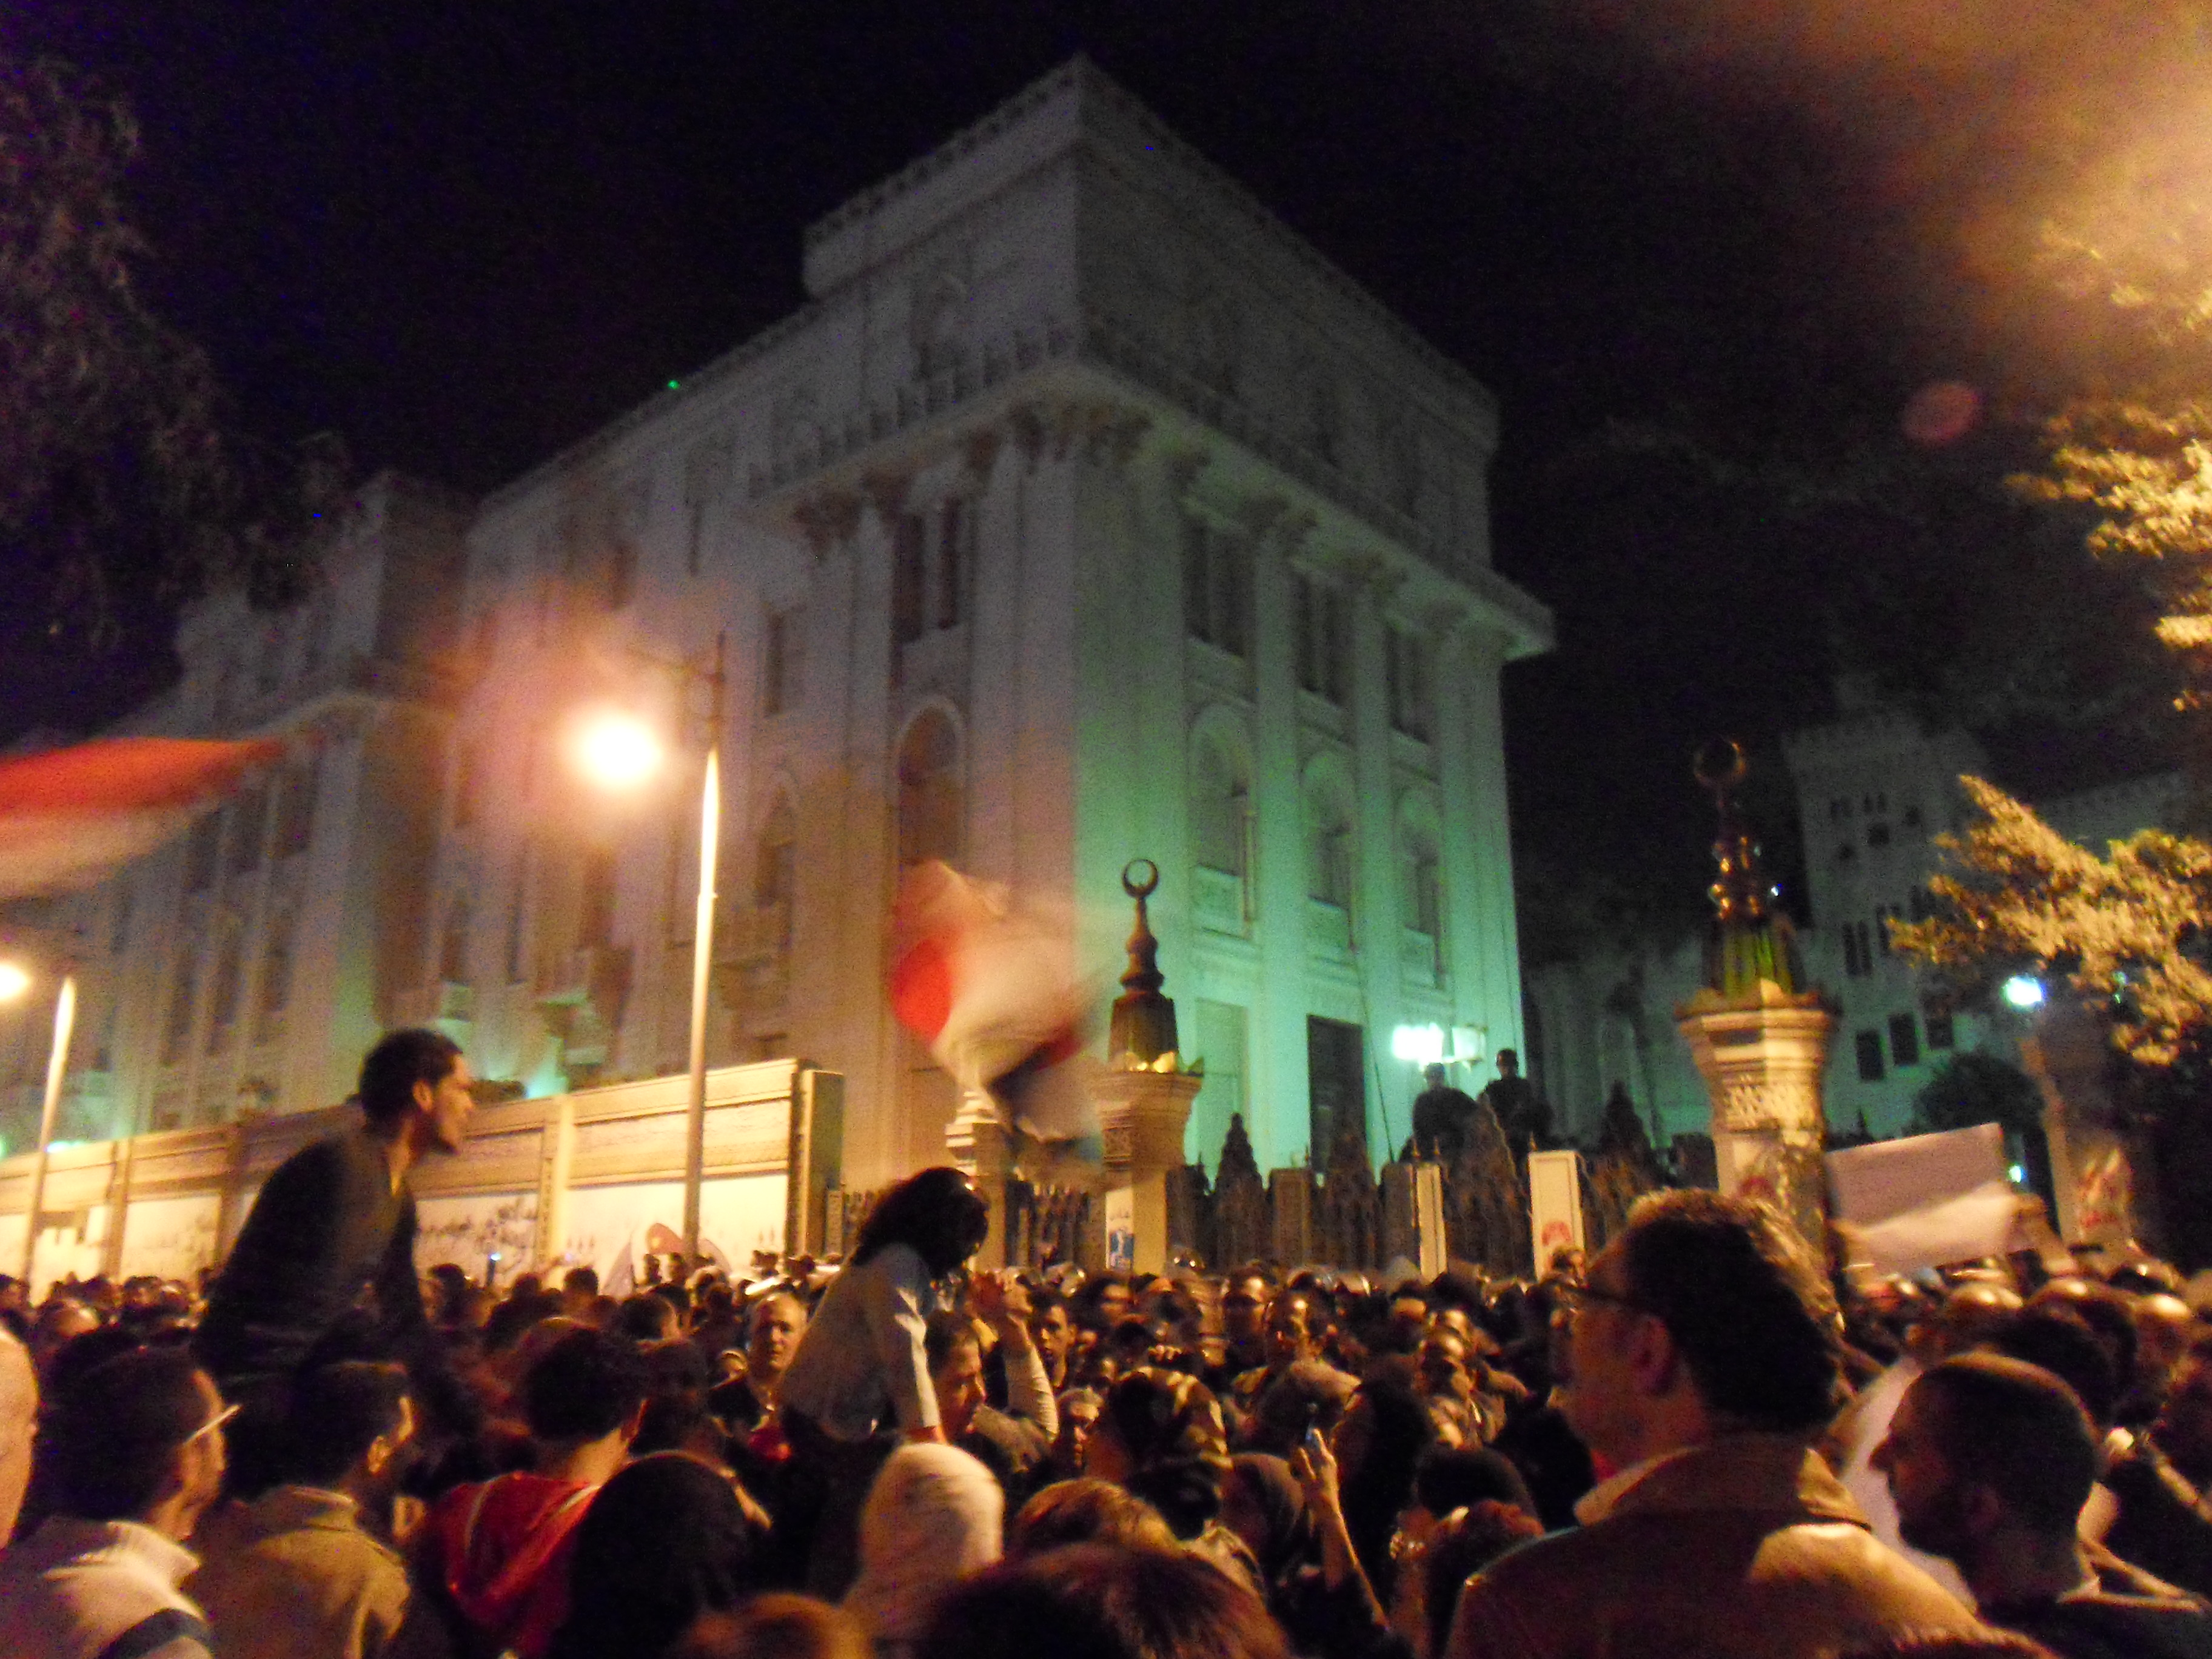 Protesters in front of one of the buildings in the Presidential Palace.